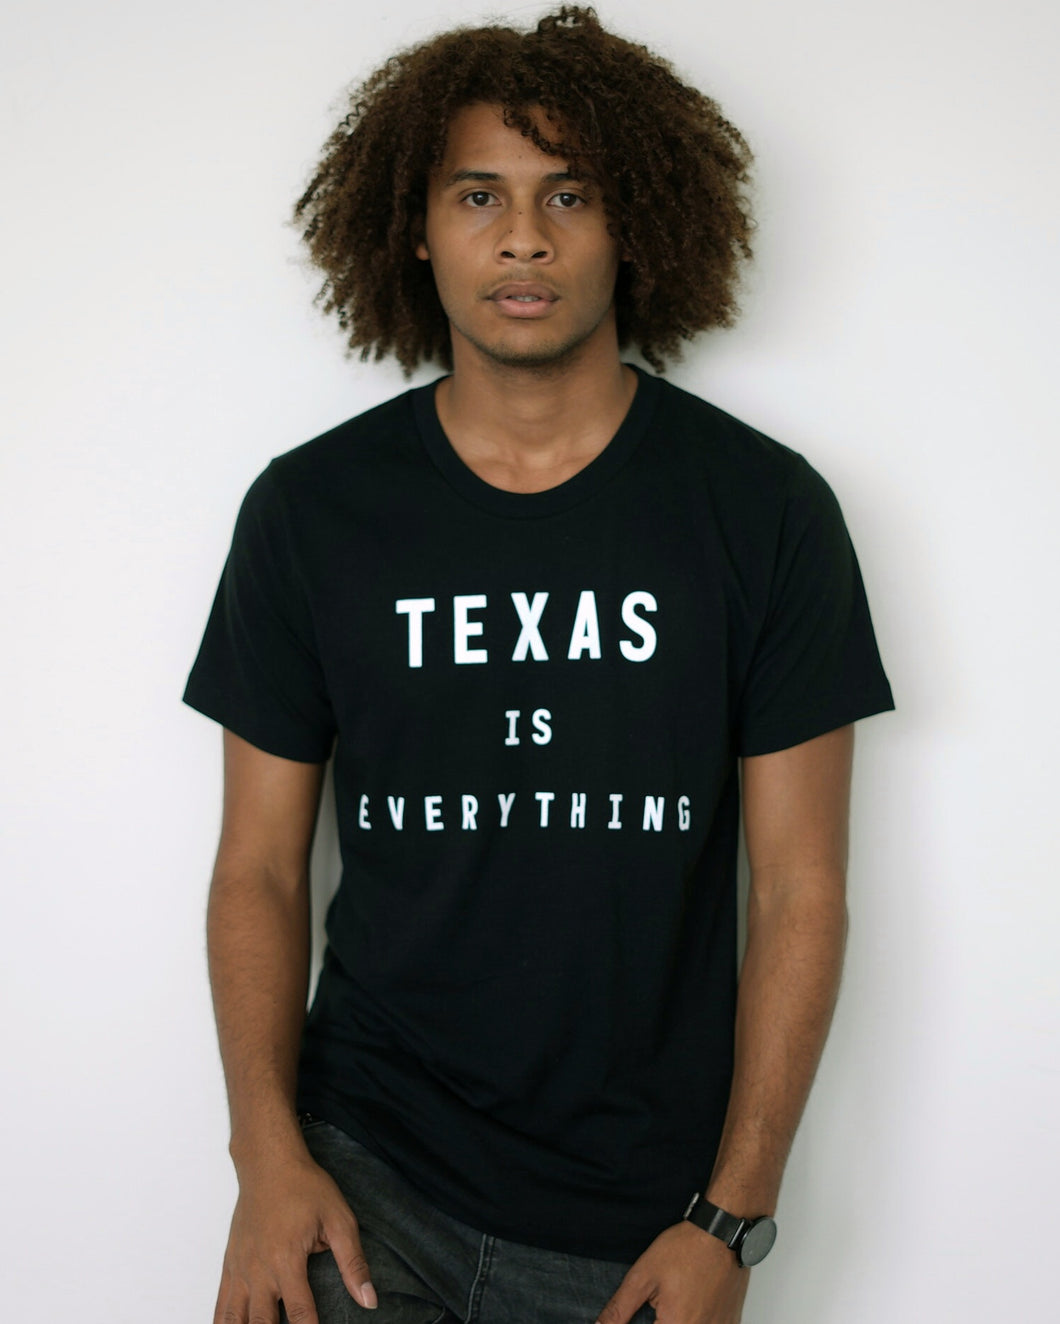 The Texas is Everything Tee (Unisex Black/White)